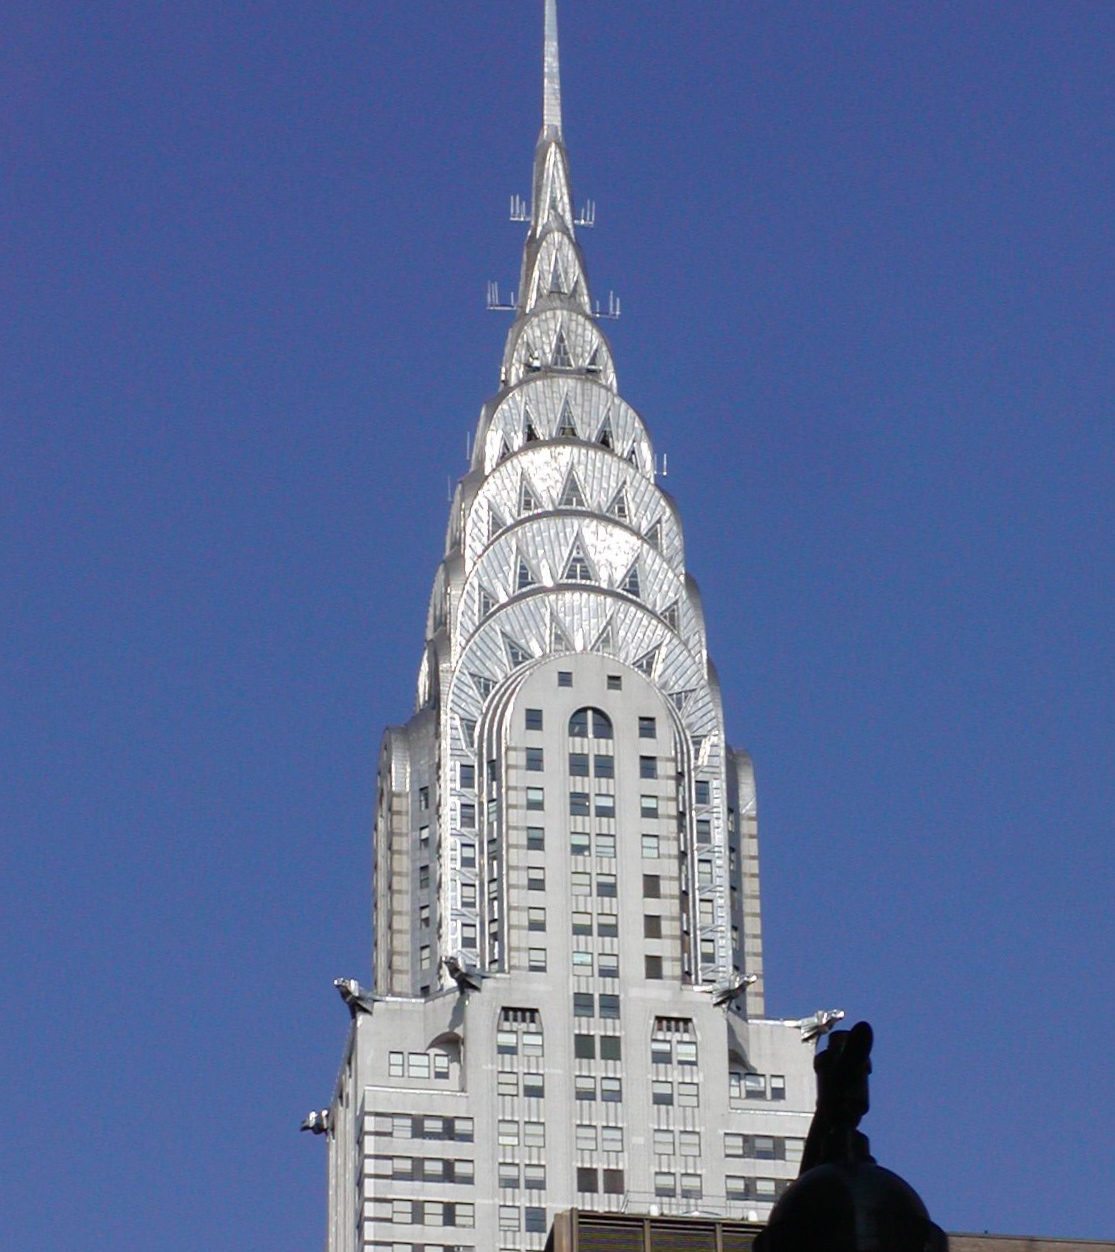 Chrysler Building, New York City - 16711 Reviews in Things to Do